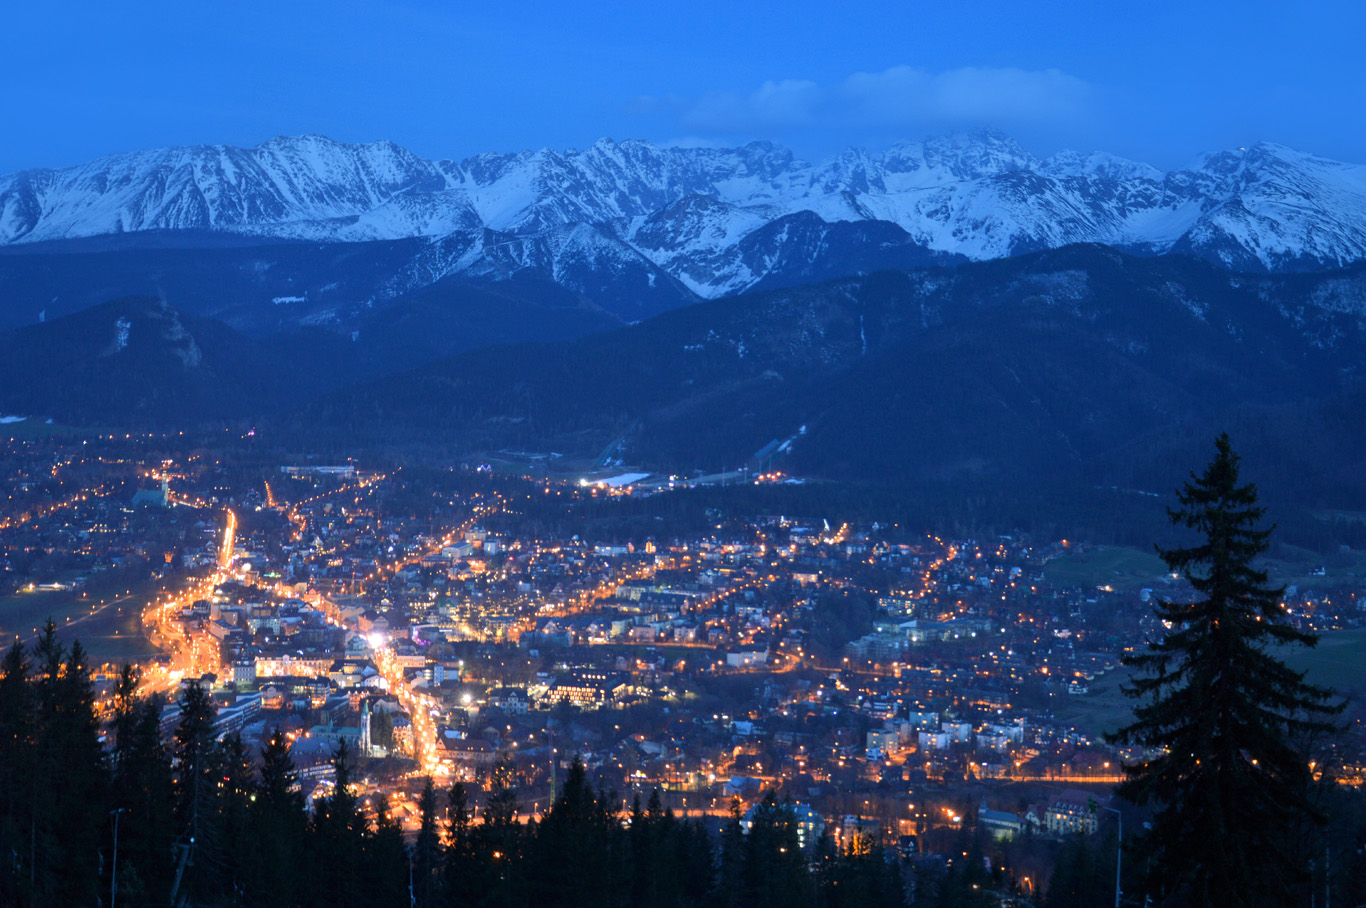 Zakopane - view from Gubalowka hill at night